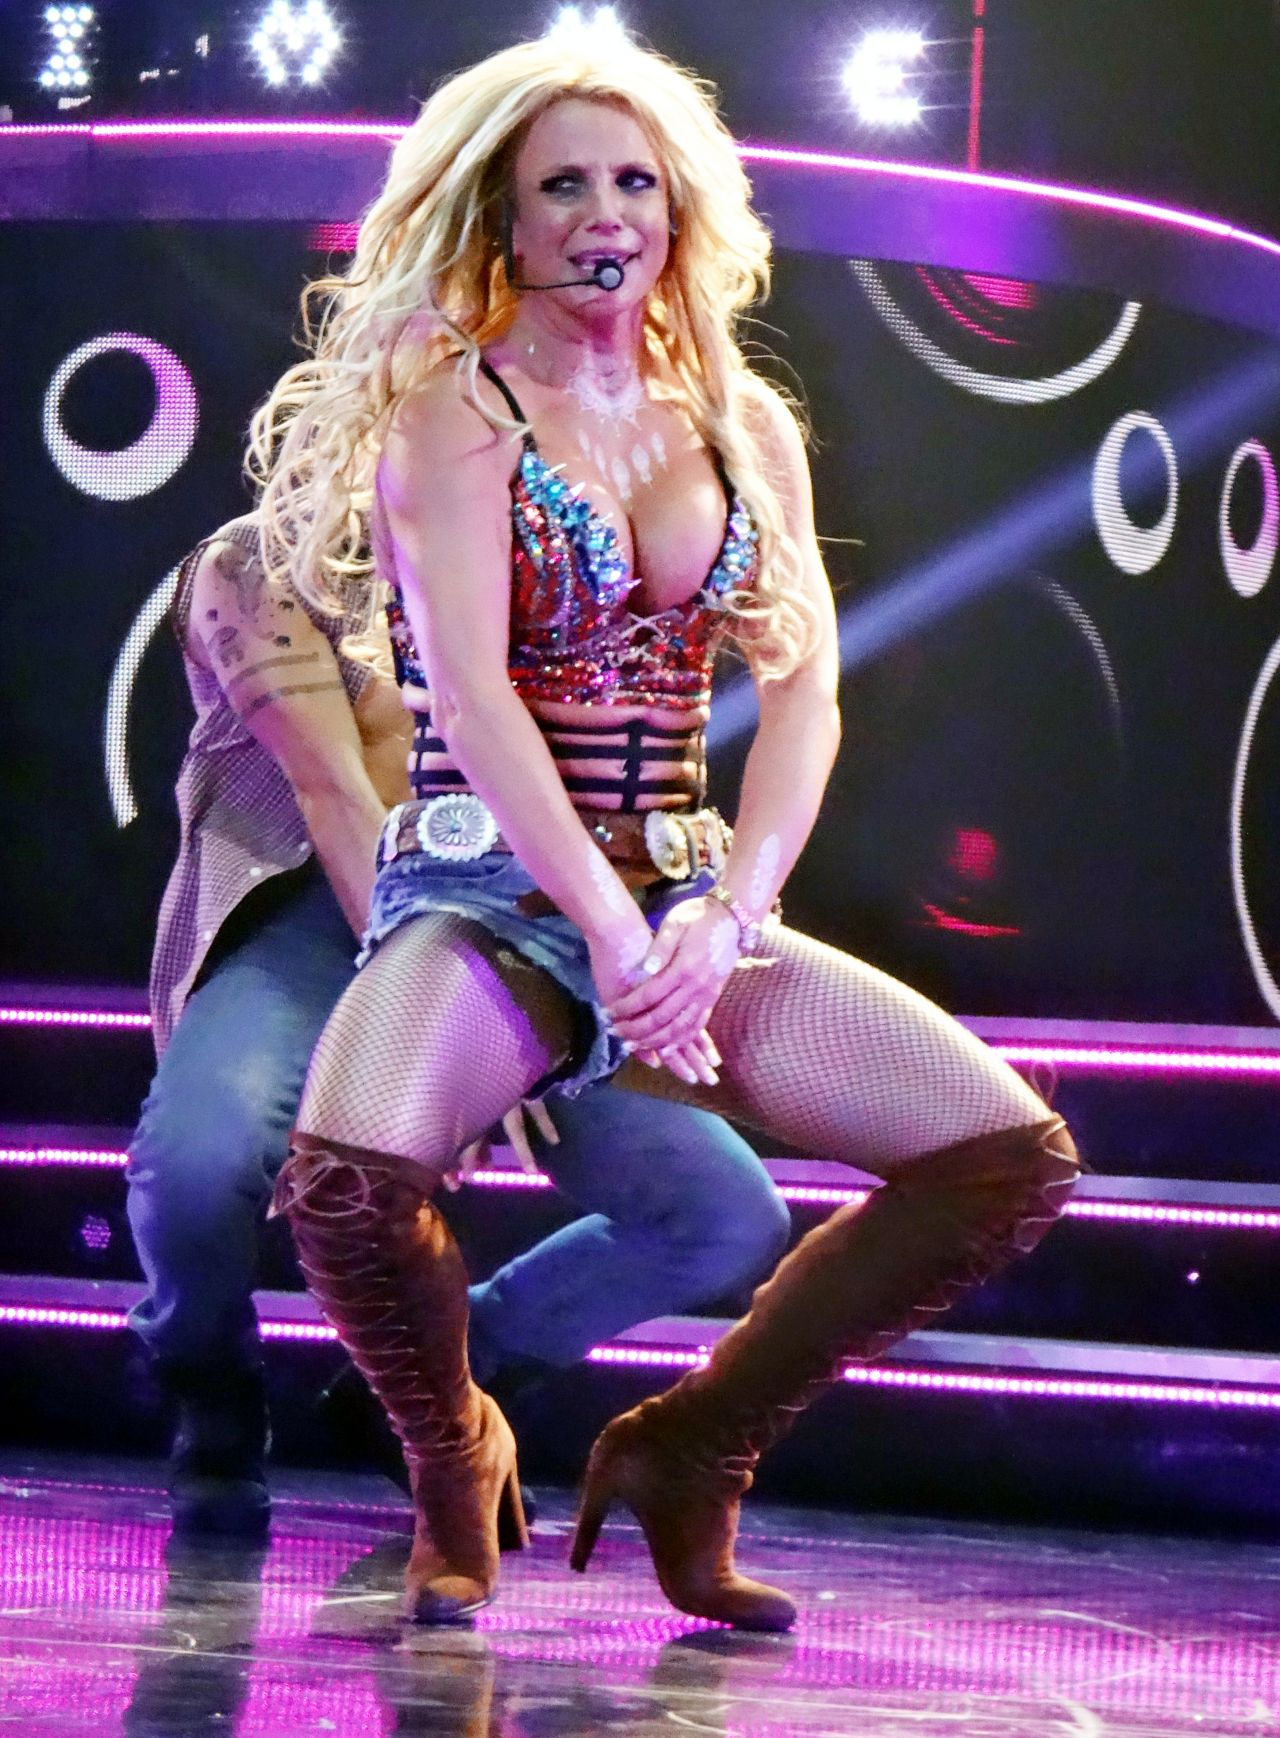 britney-spears-performing-at-her-piece-o